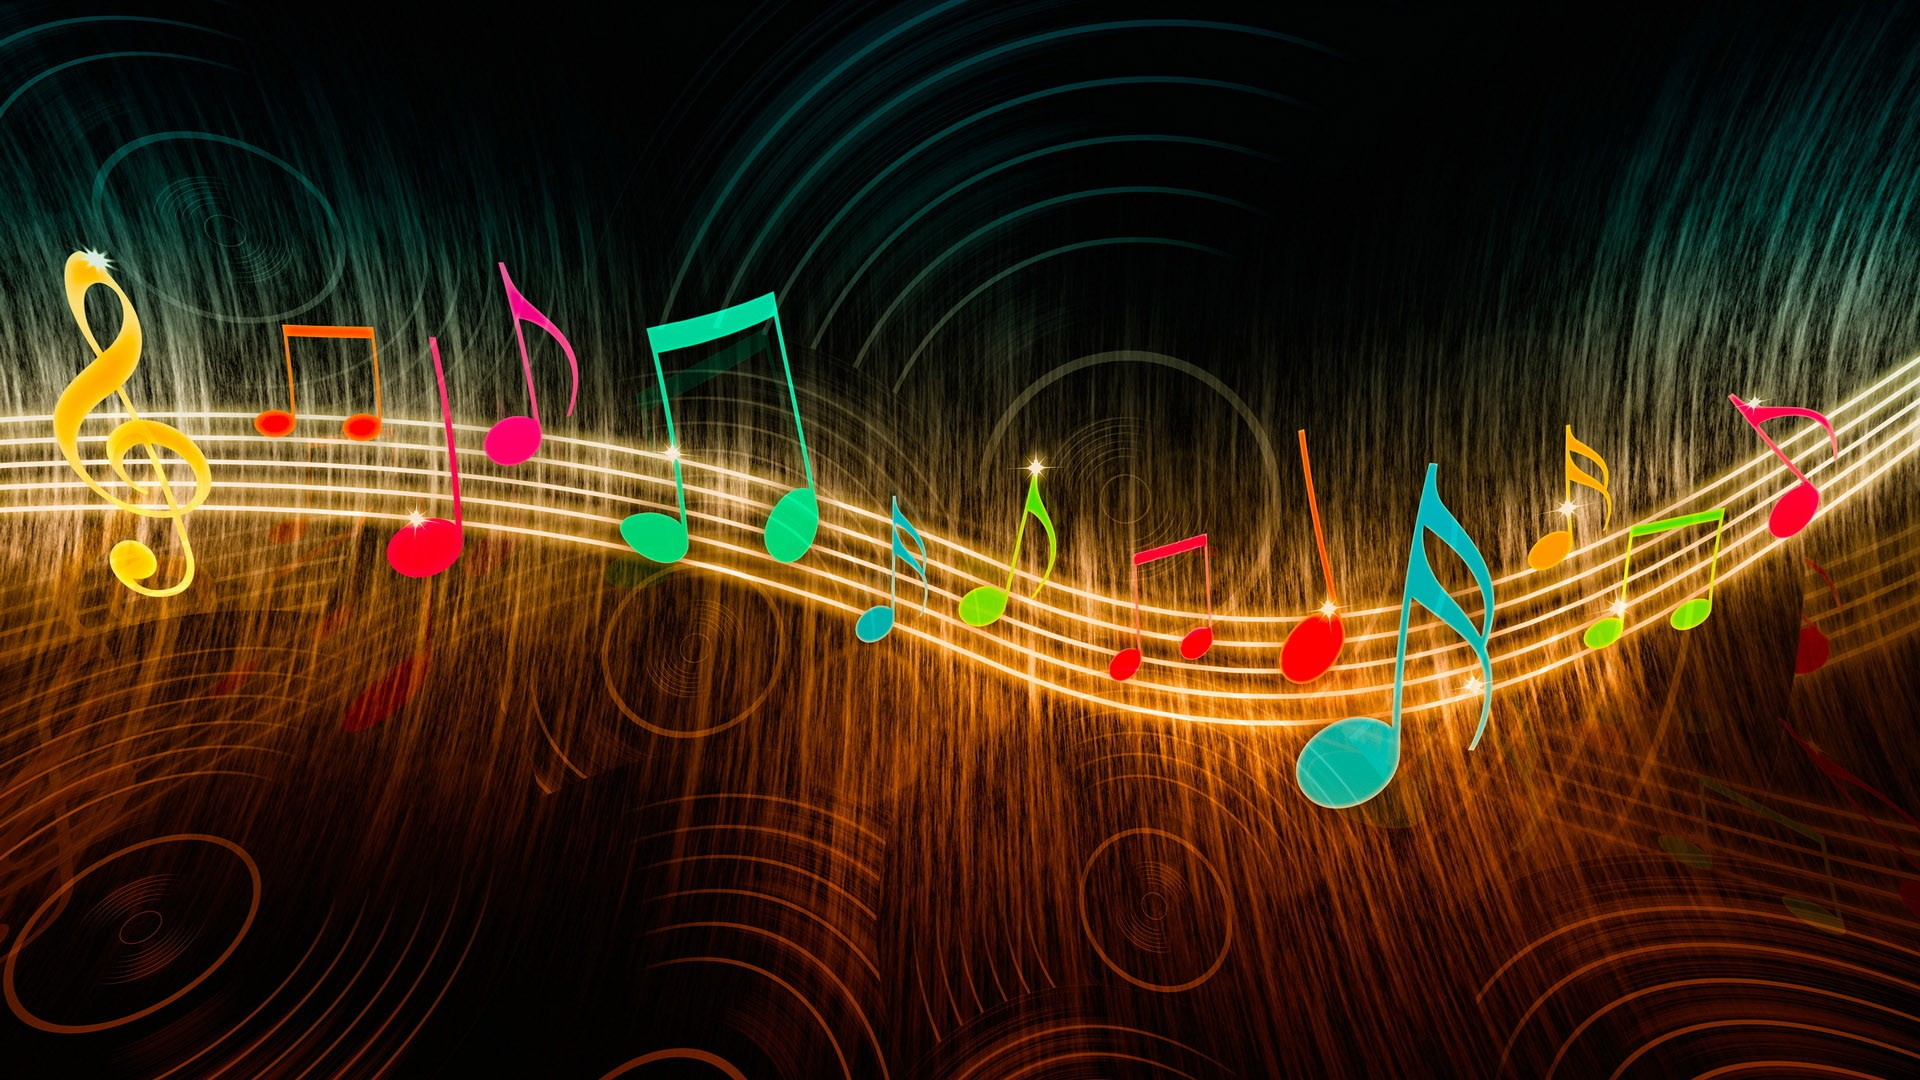 Flow Of Music Abstract HD Wallpaper 1920x1080 (1080p ...  Mobile Music Hd Wallpaper